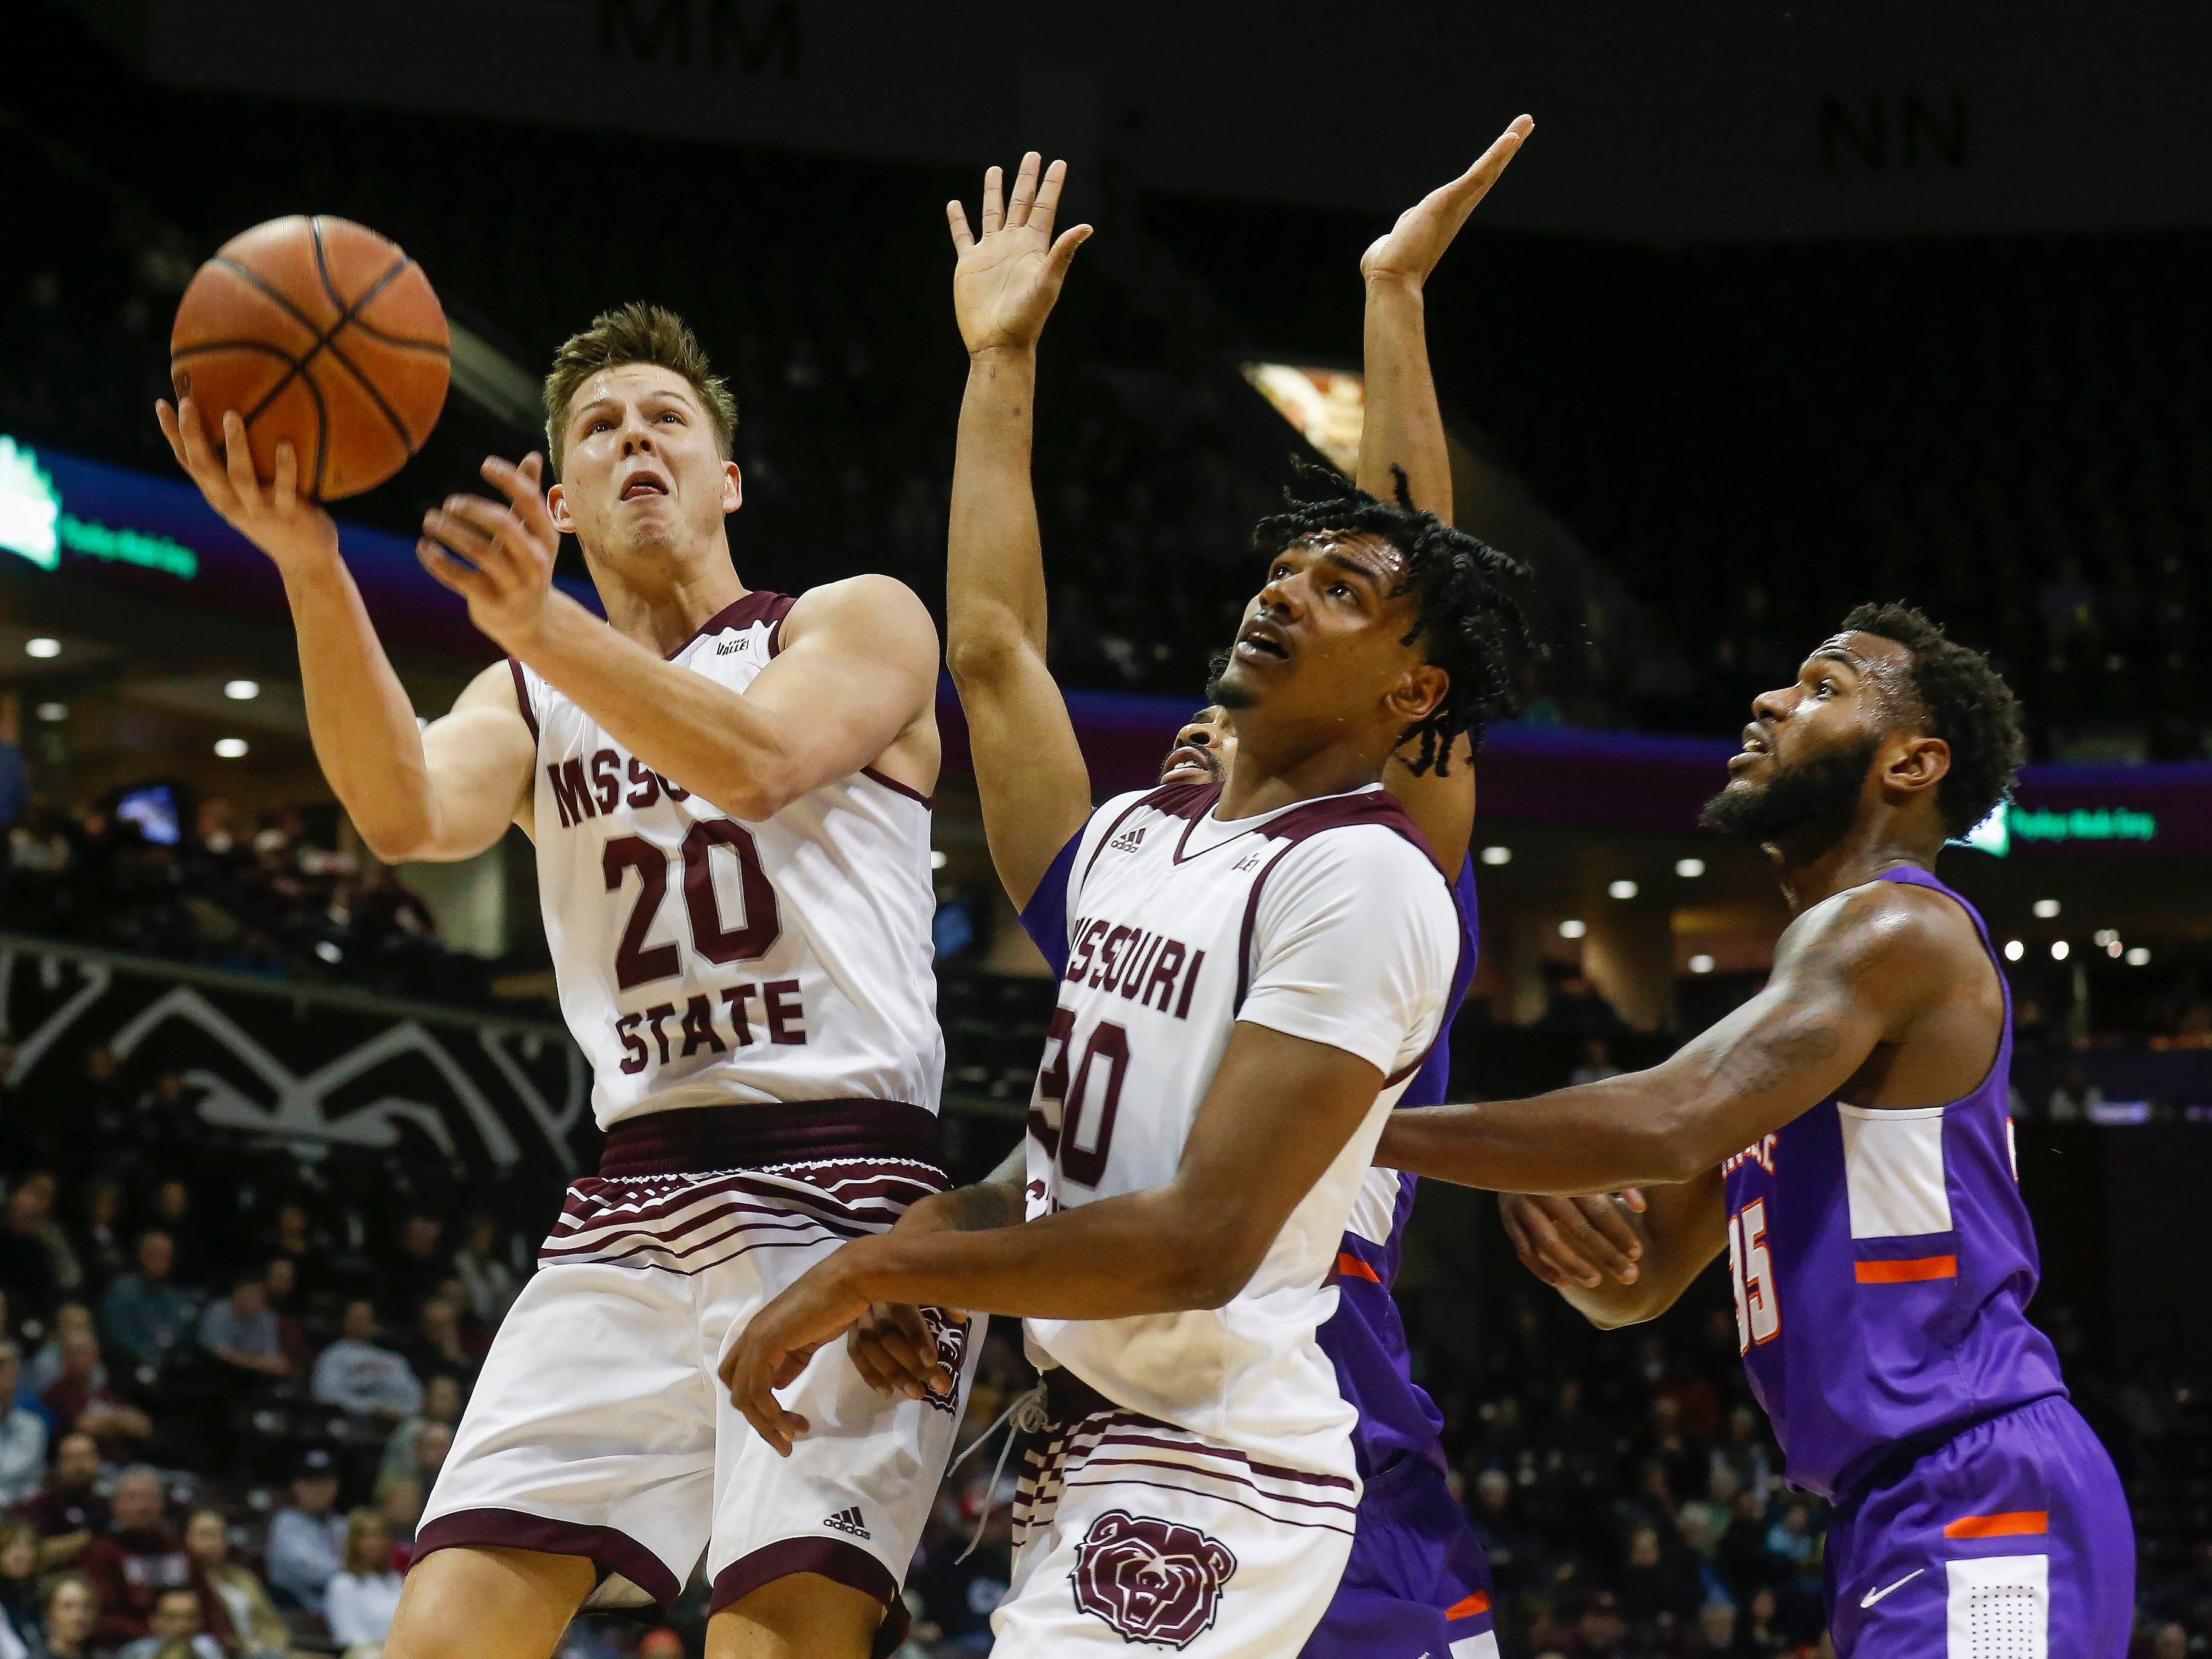 Ryan Kreklow (20), of Missouri State, puts up a shot during the Bears game against the Evansville Purple Aces at JQH Arena on Wednesday, Jan. 16, 2019.